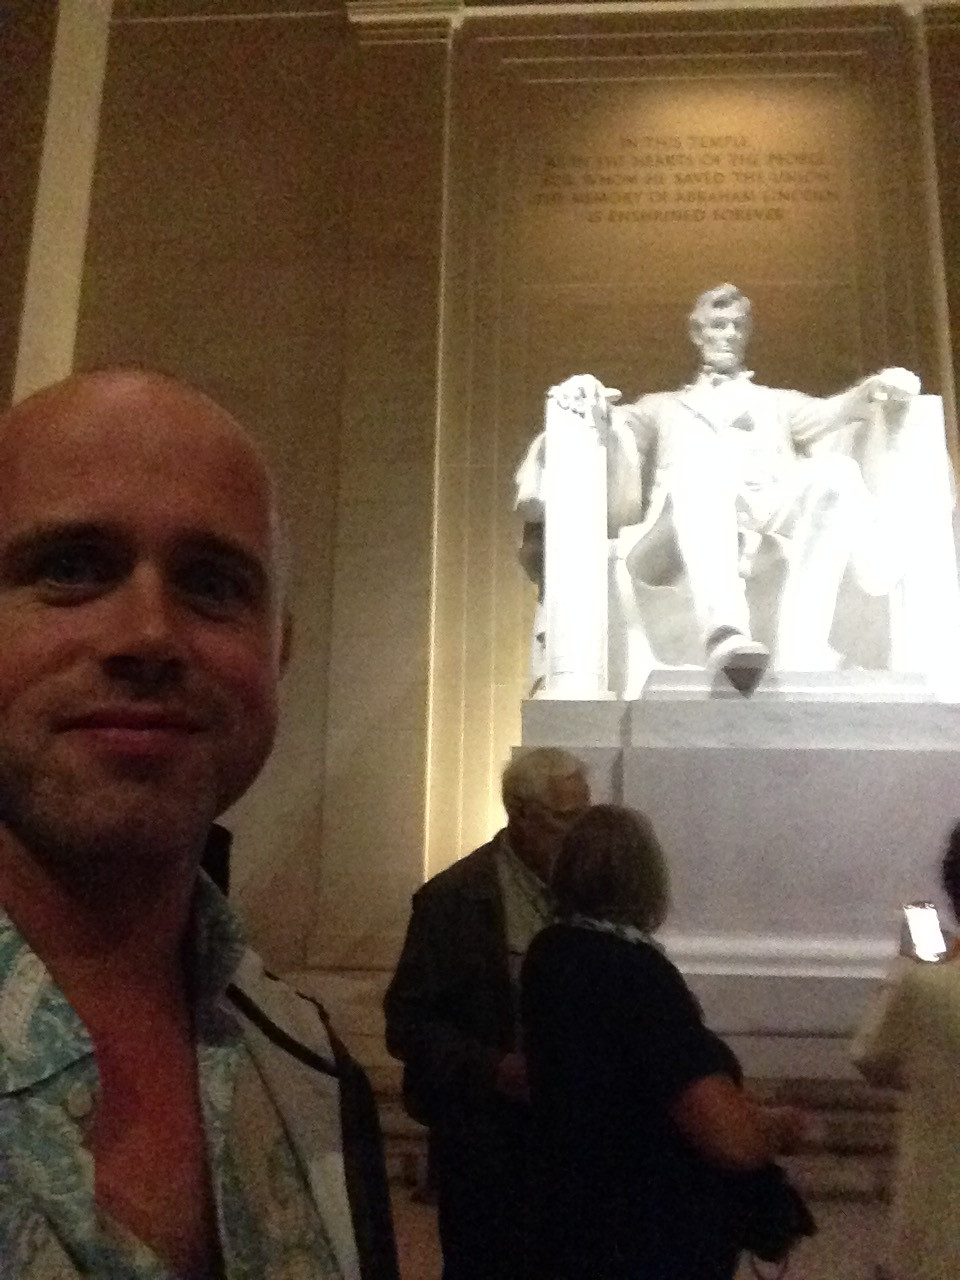 Proof that I was in Washington. I'm the one on the left.